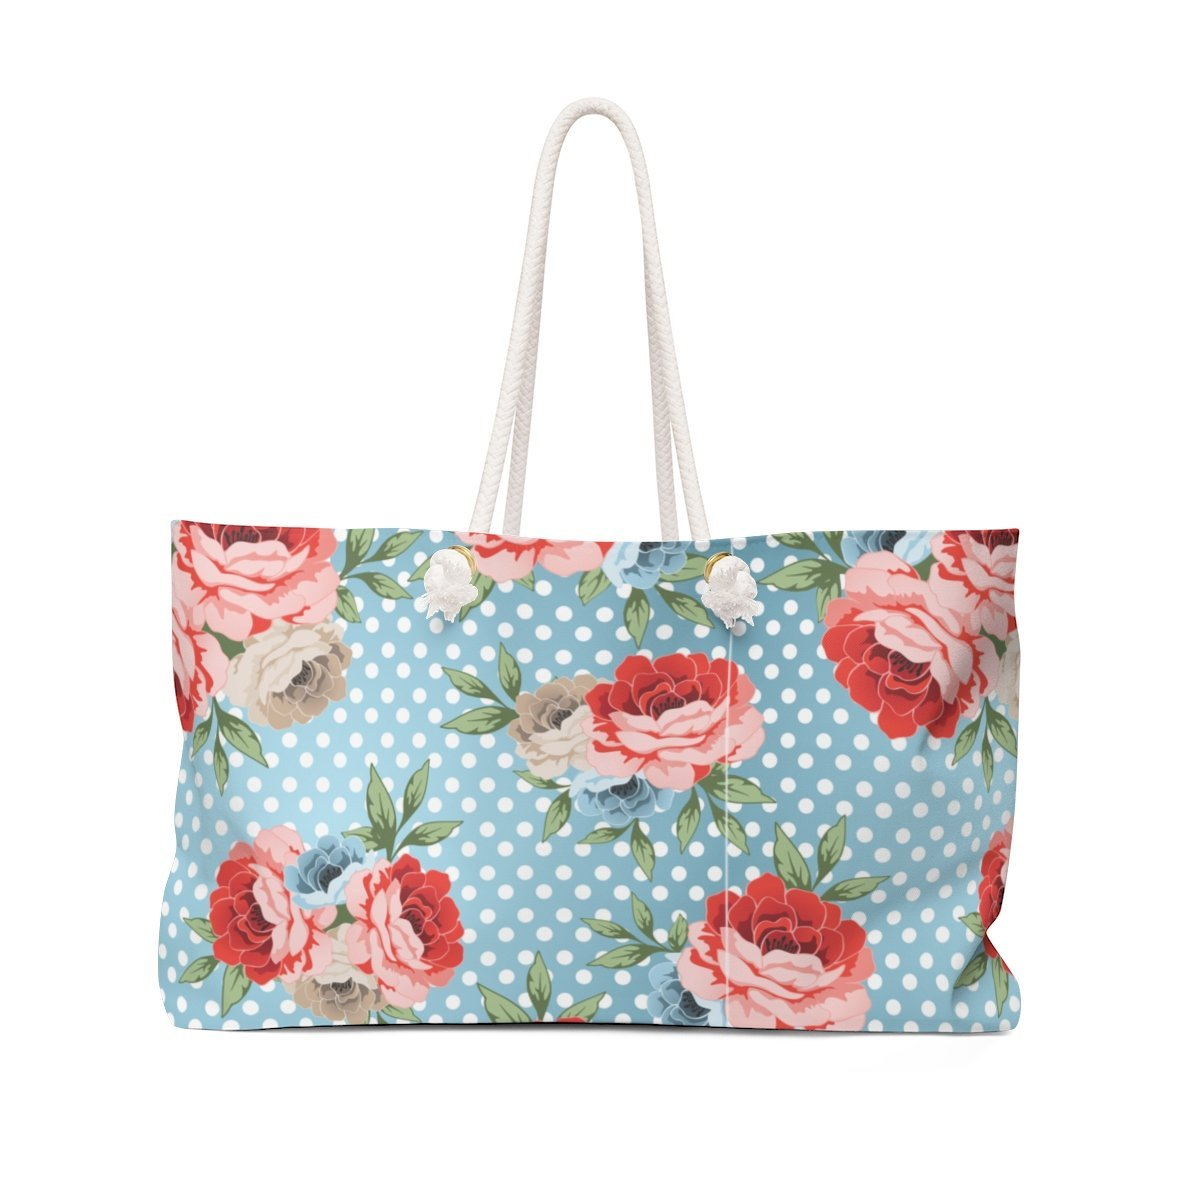 Leanne & Co. Bags 24x13 Polka Dot Roses Weekender Bag